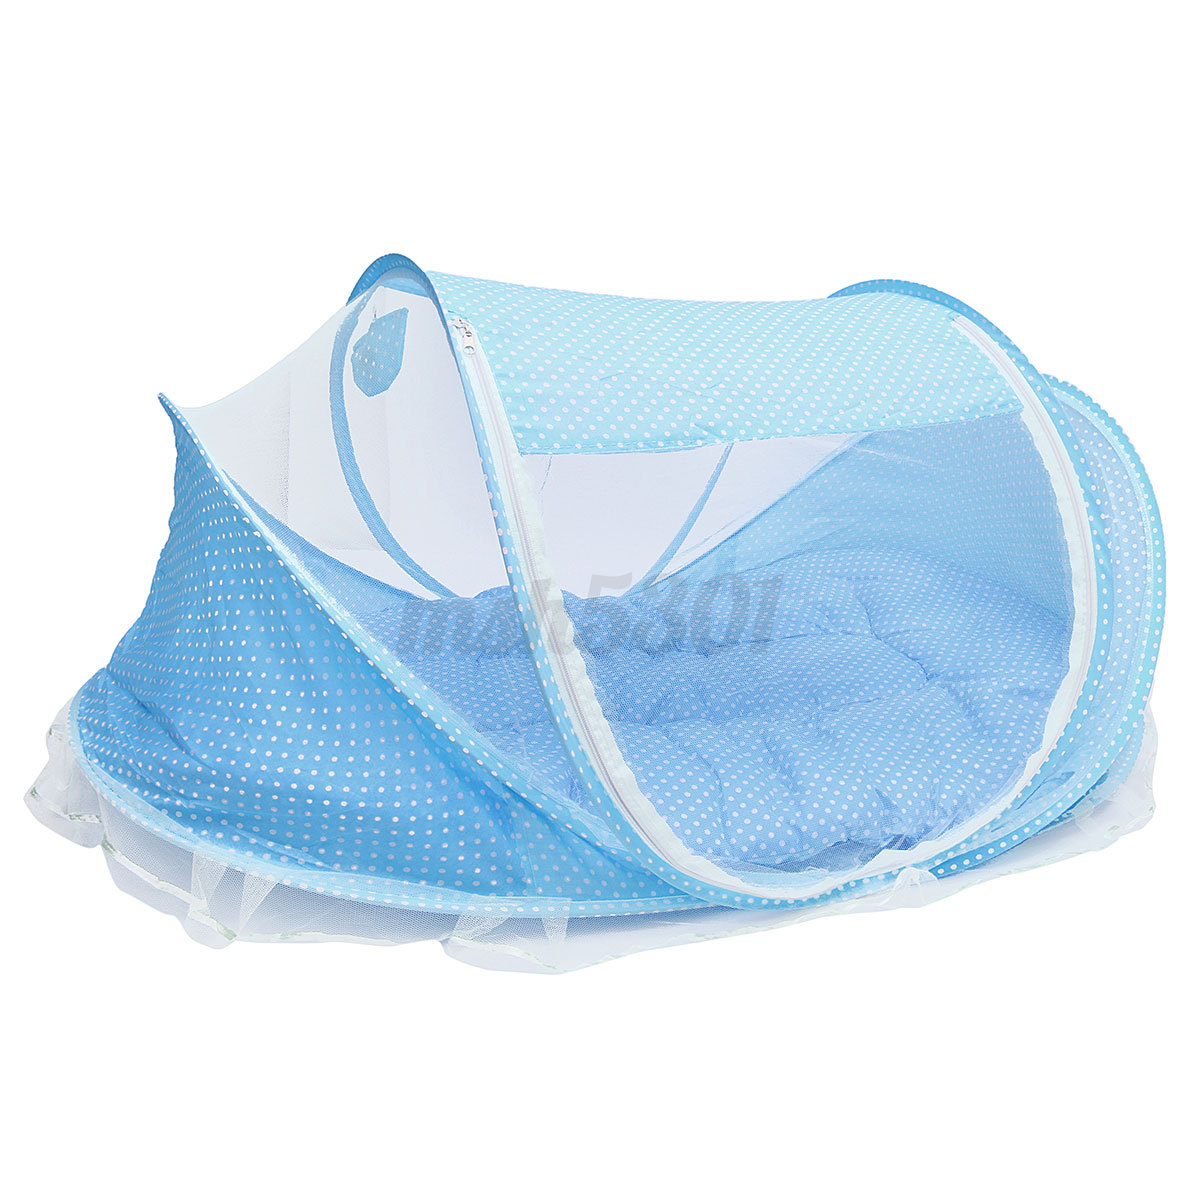 Portable-0-3-Years-Old-Infant-Baby-Mosquito-  sc 1 st  eBay & Portable 0-3 Years Old Infant Baby Mosquito Net Tent Mattress Bed ...